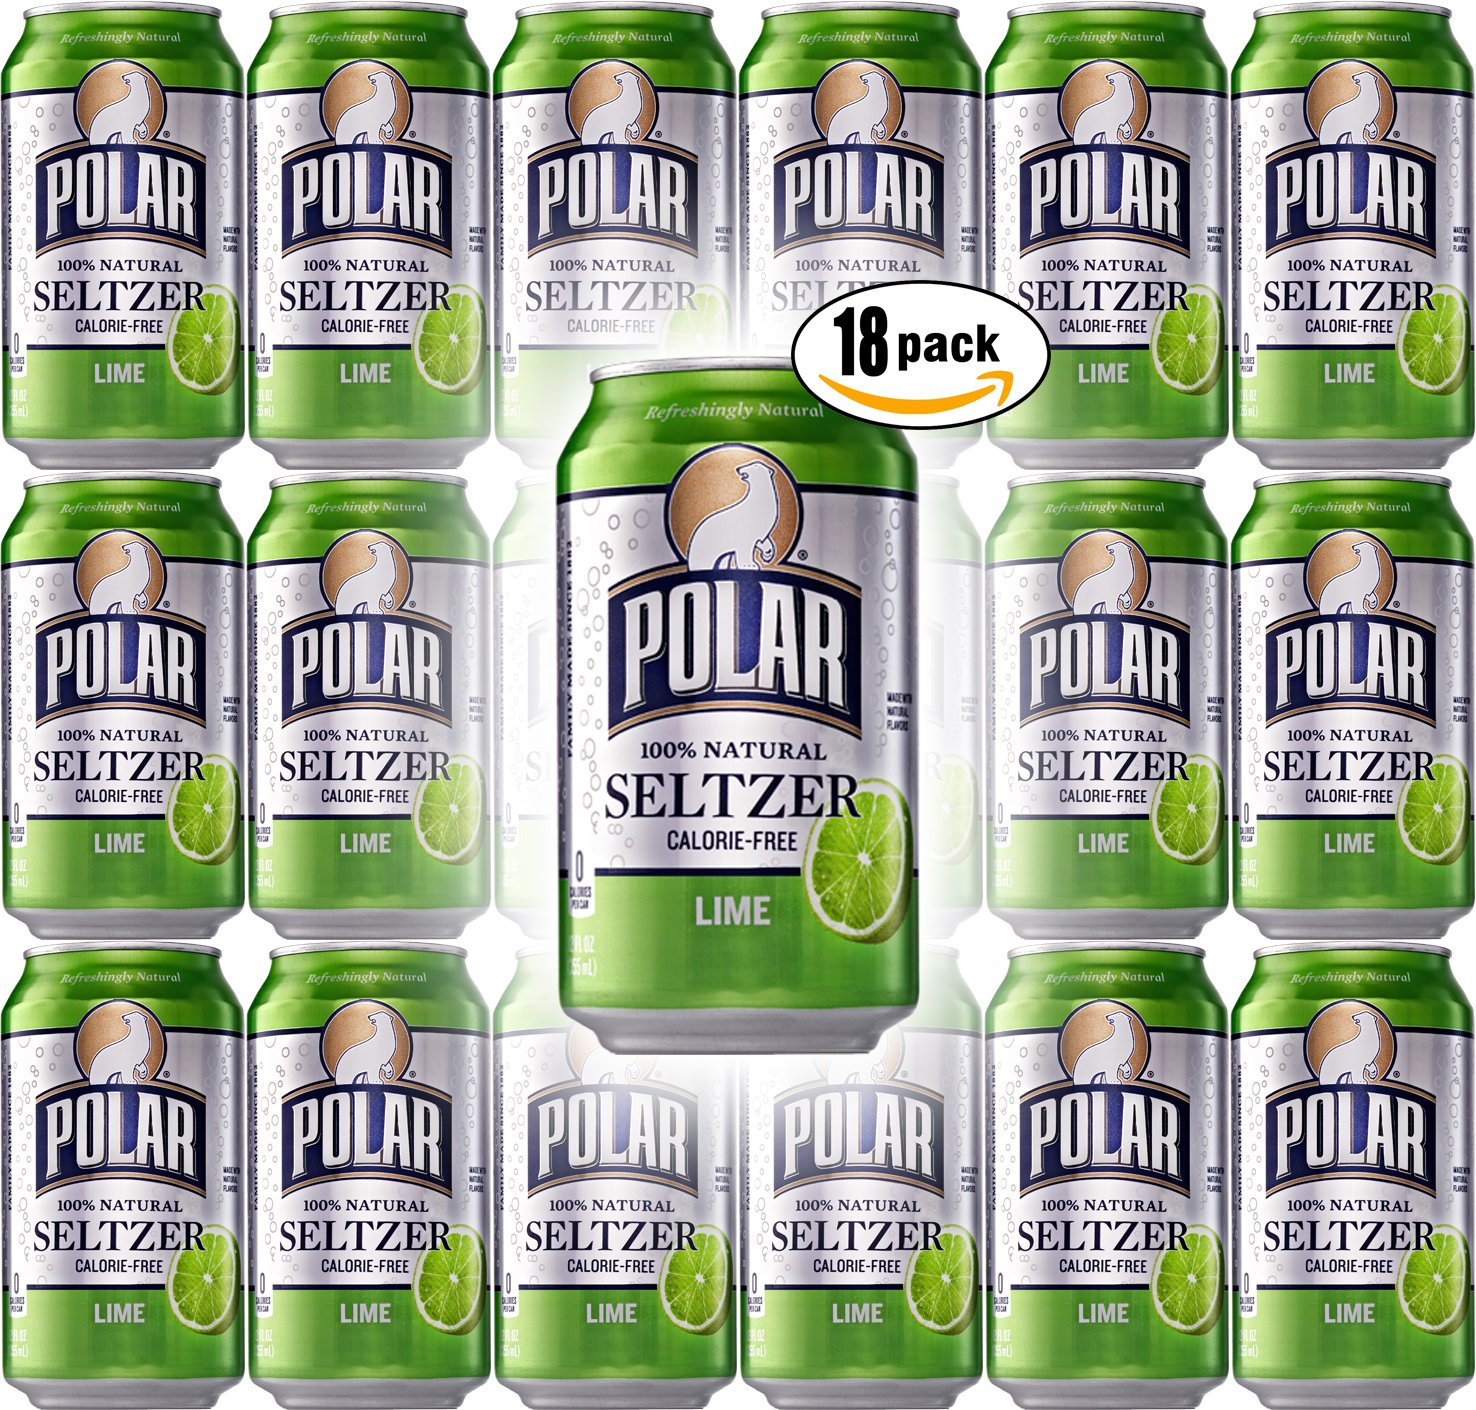 Polar Seltzer Lime Dedication 12oz Cans Pack Oz Total 216 of Popular product 18